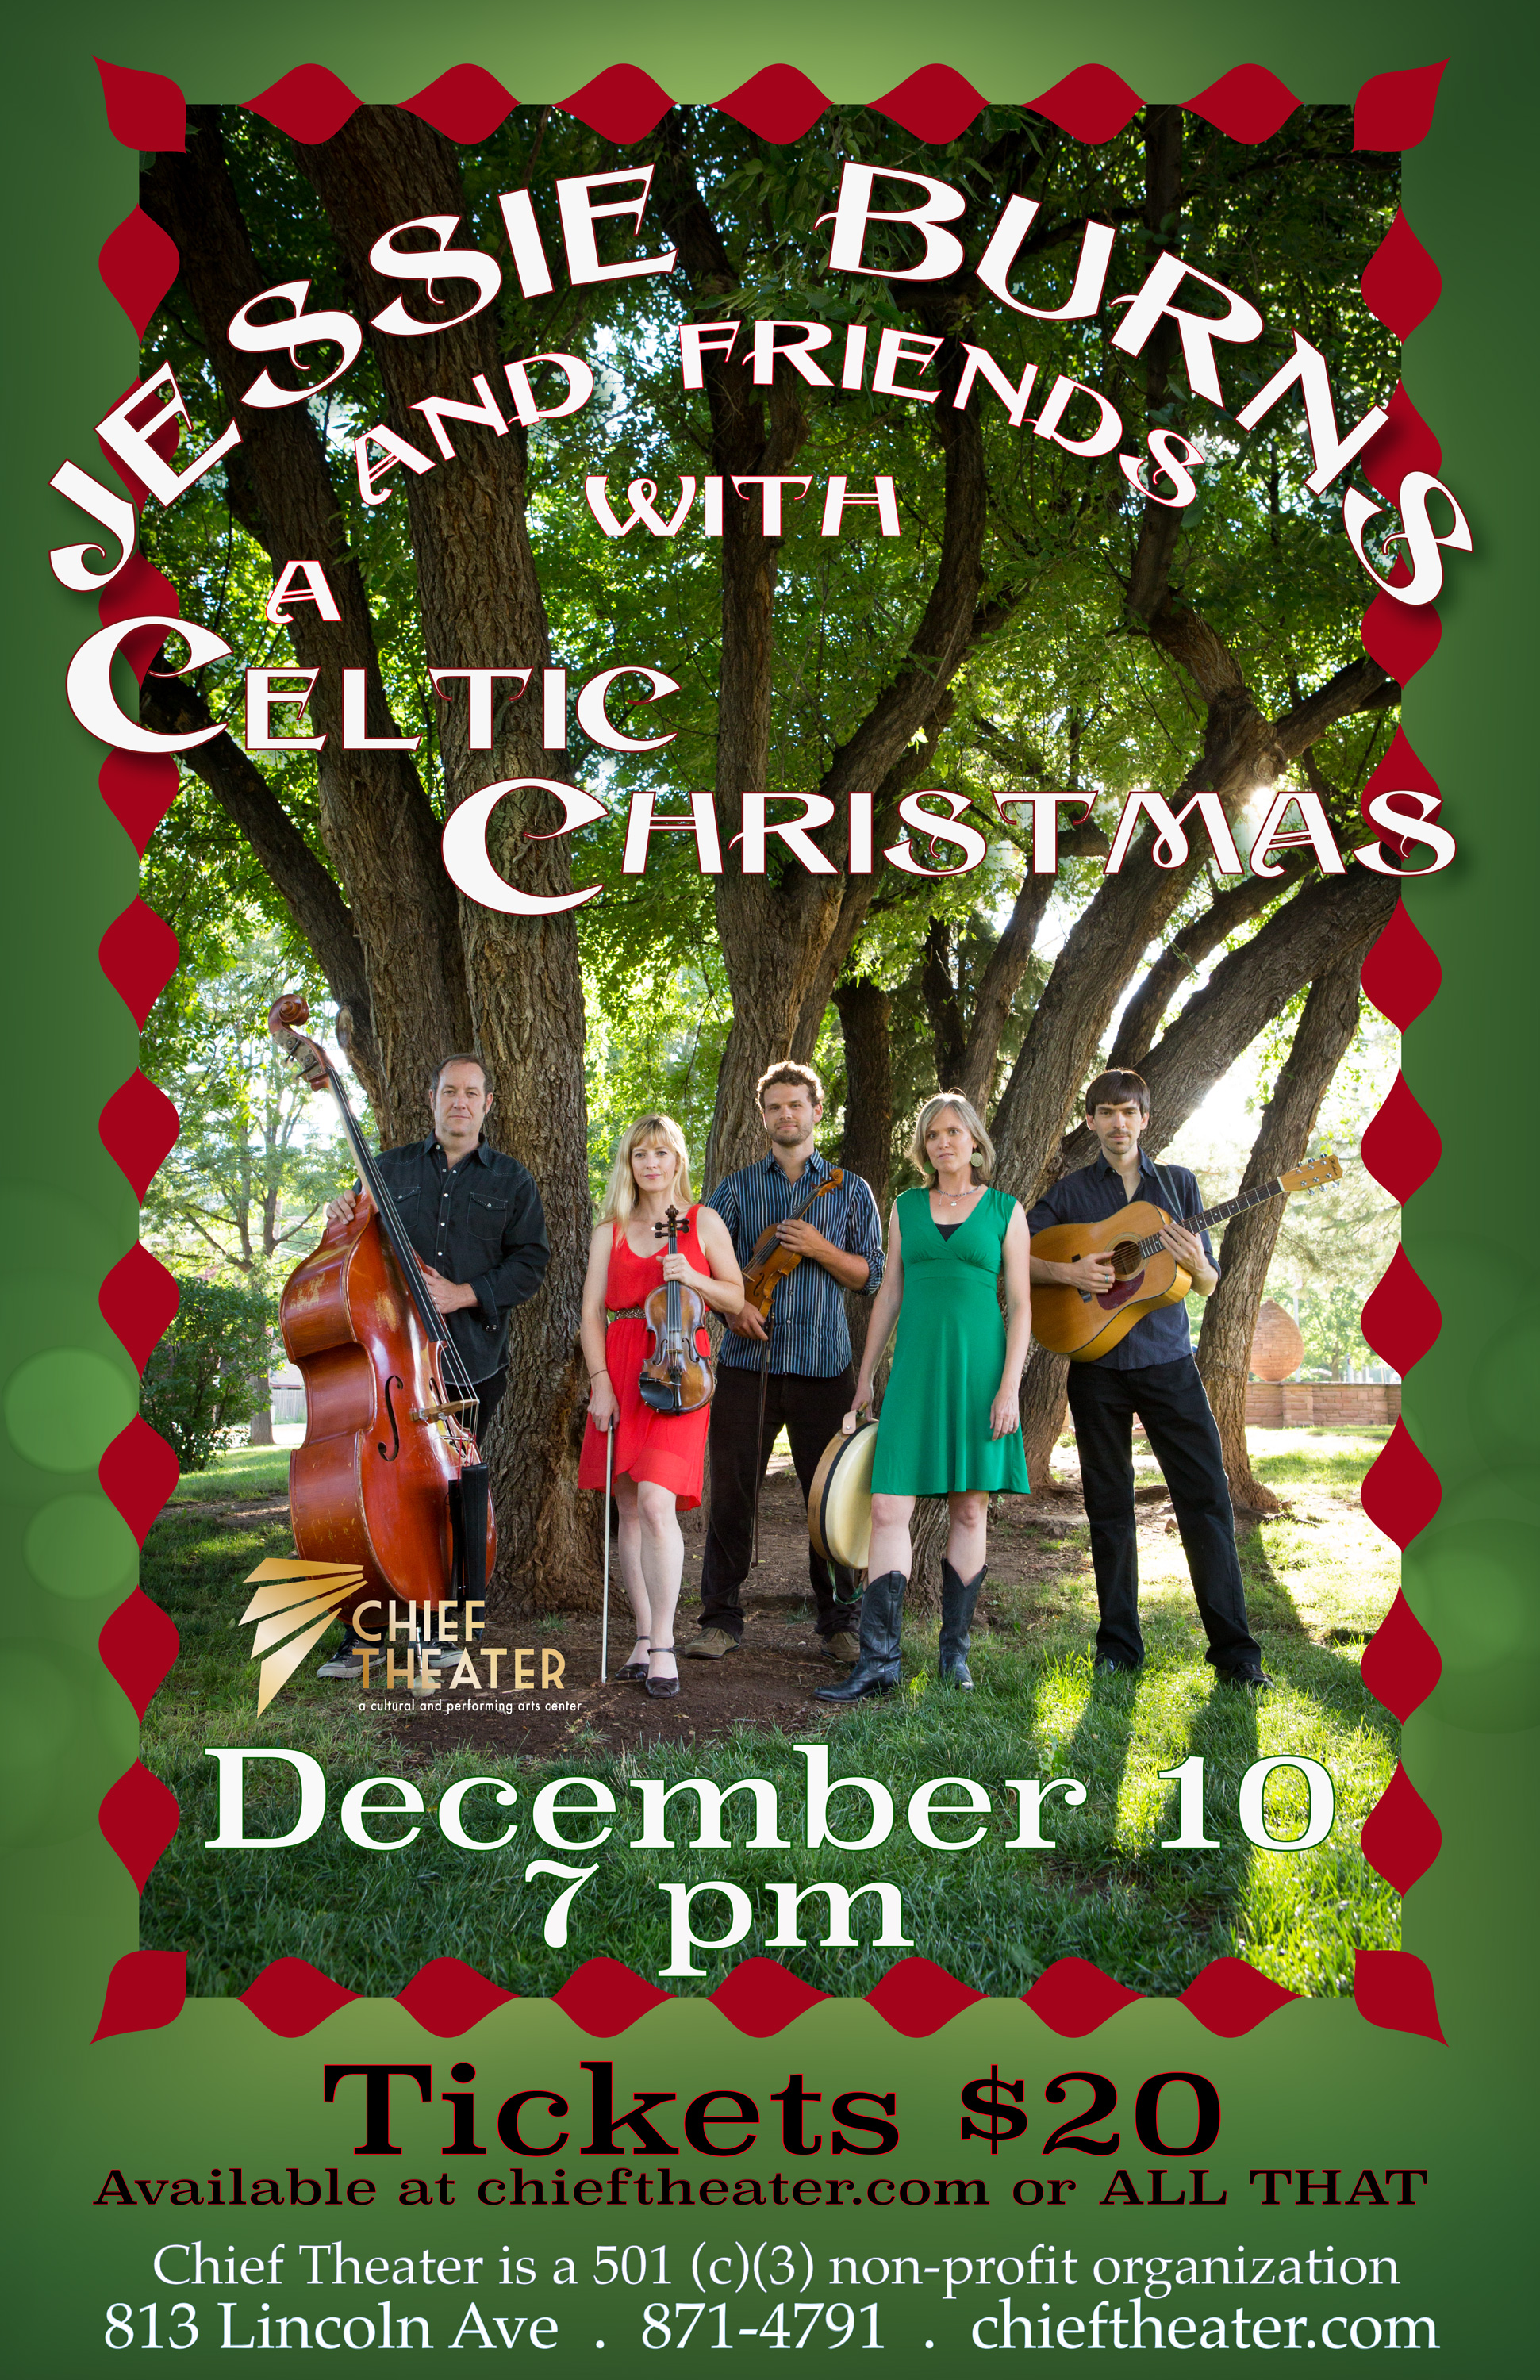 Tickets for Jessie Burns Presents: A Celtic Christmas in Steamboat ...